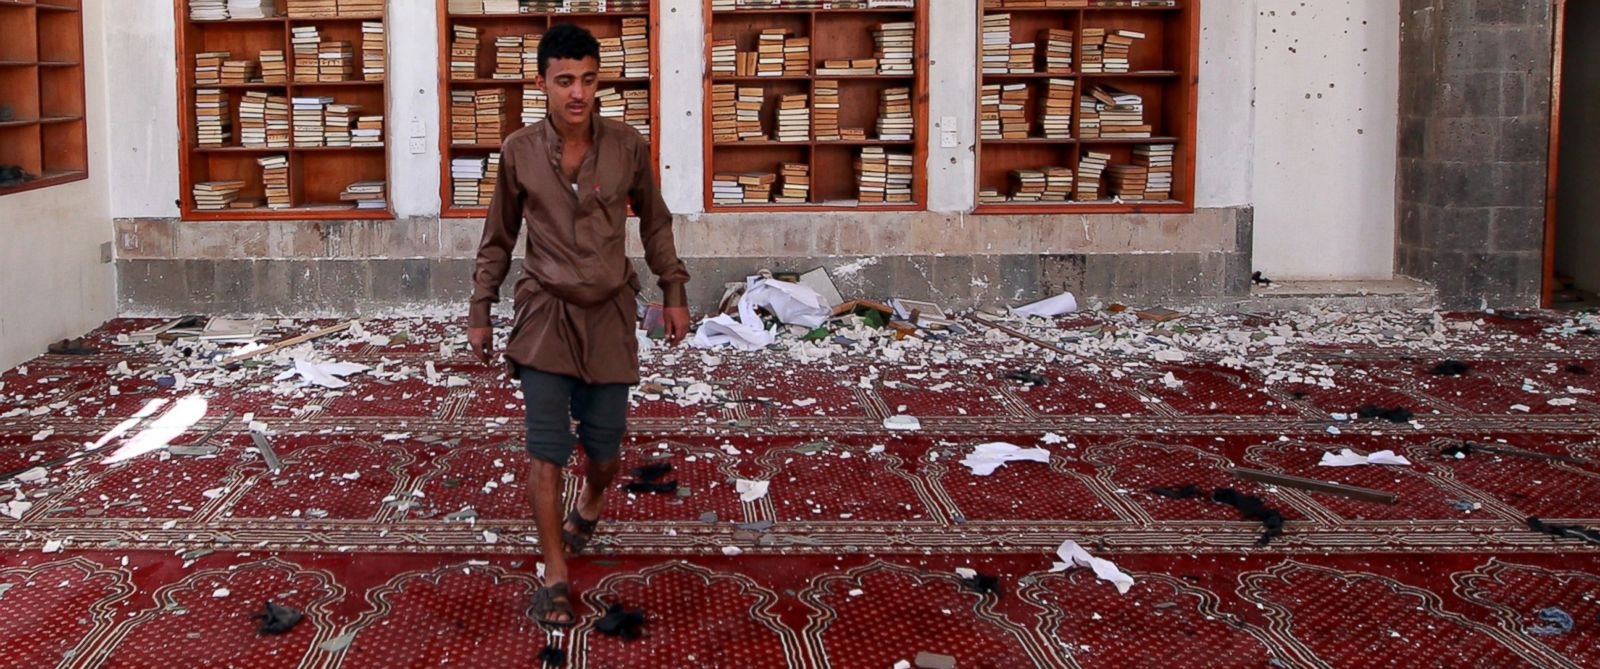 PHOTO: A Yemeni man inspects the damage following a bomb explosion at the Badr mosque in southern Sanaa, Yemen on March 20, 2015.